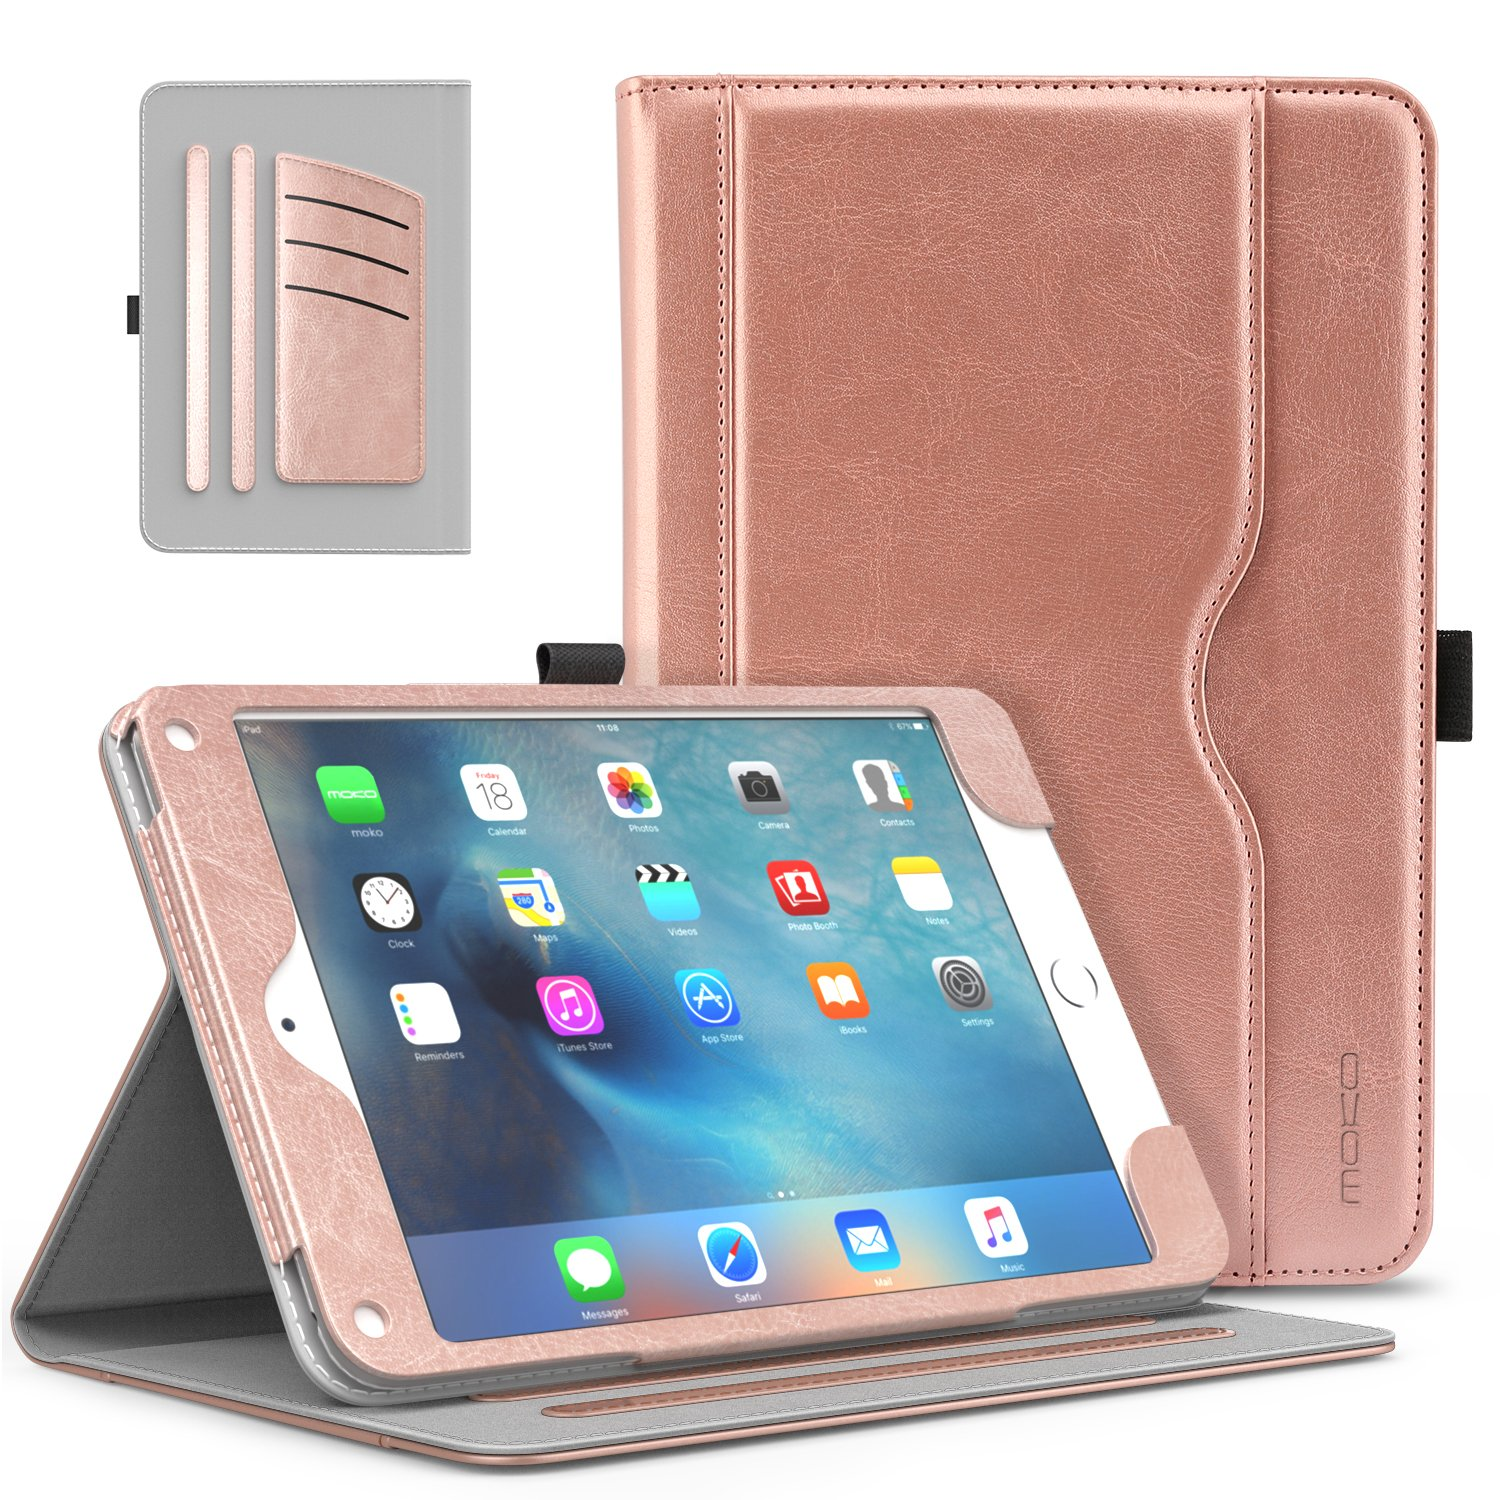 MoKo iPad Mini 4 Case - Slim Folding Stand Folio Cover Case for Apple iPad Mini 4 7.9 Inch 2015 Release Tablet with Auto Wake/Sleep and Document Card Slots, Multiple Viewing Angles, Rose Gold